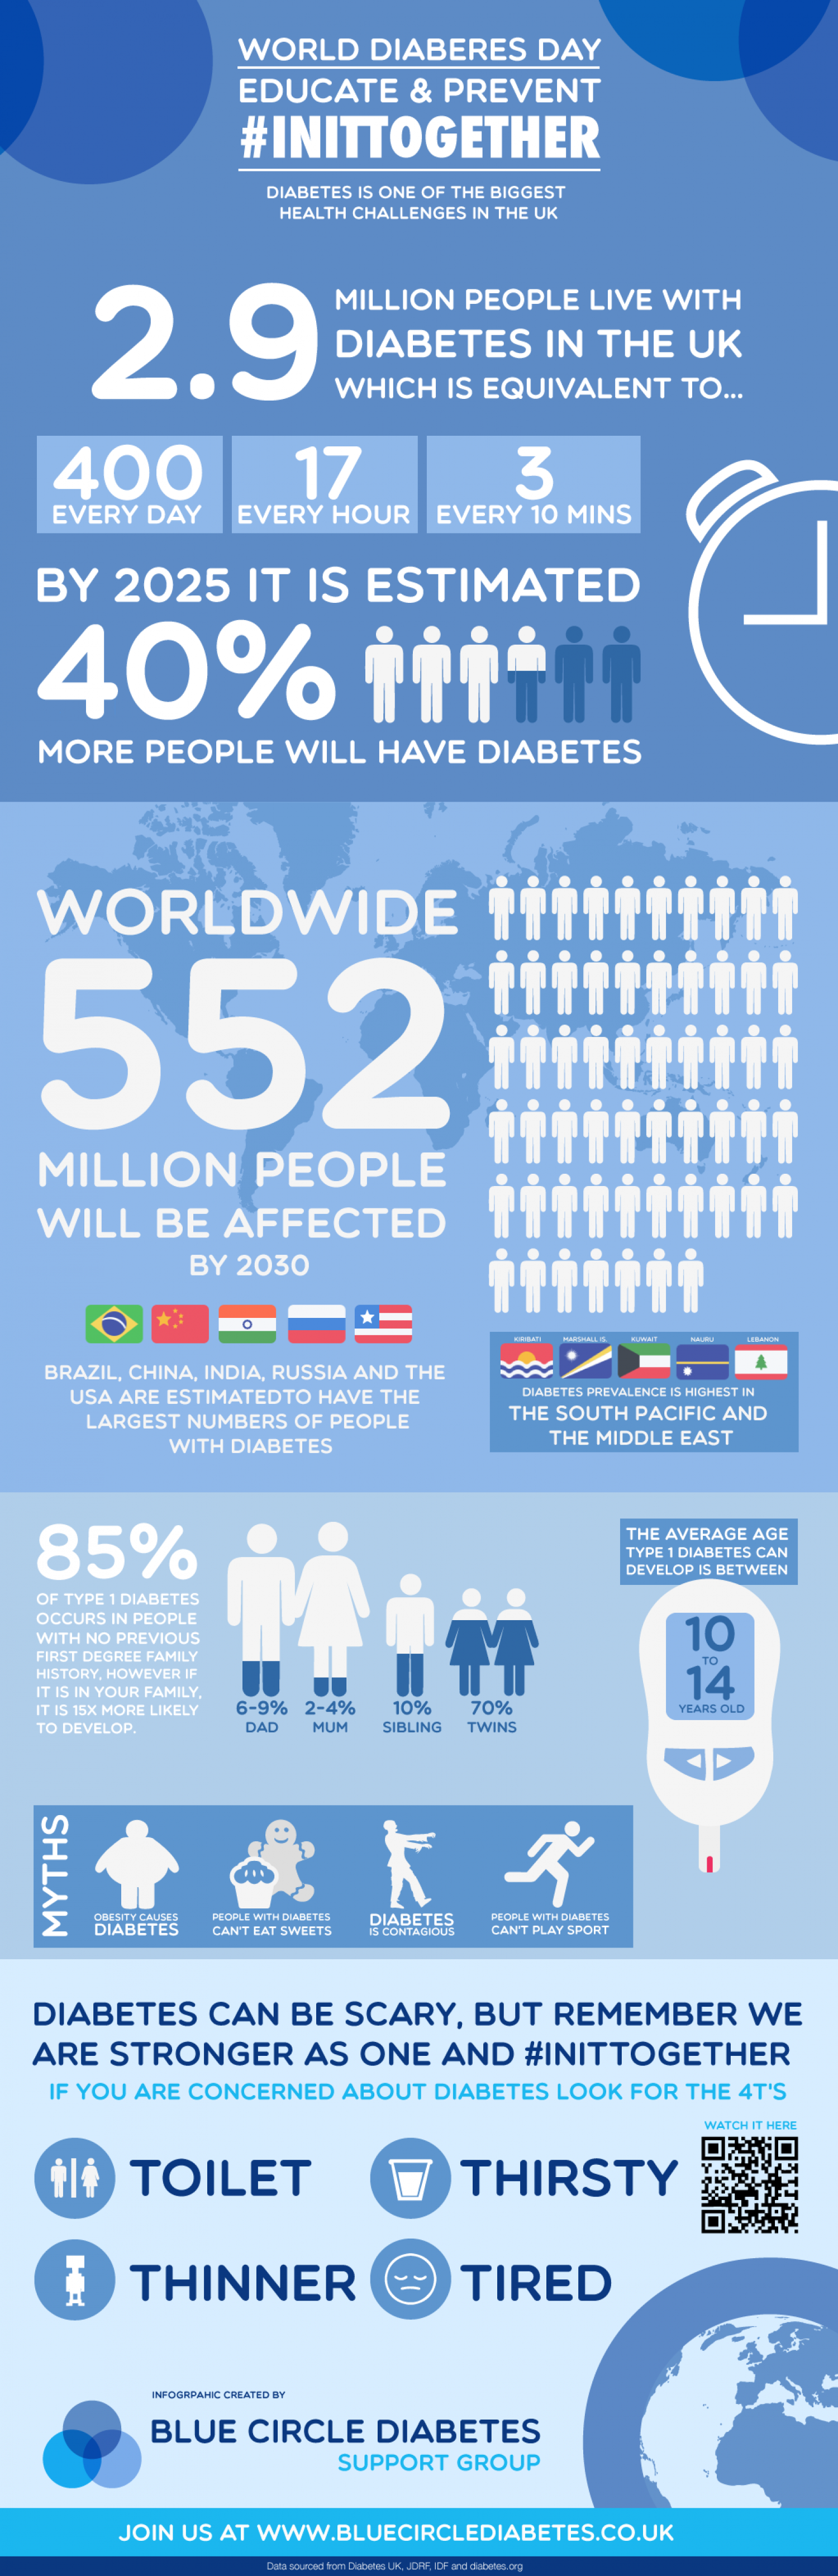 World Diabetes Day - Facts about Diabetes Infographic